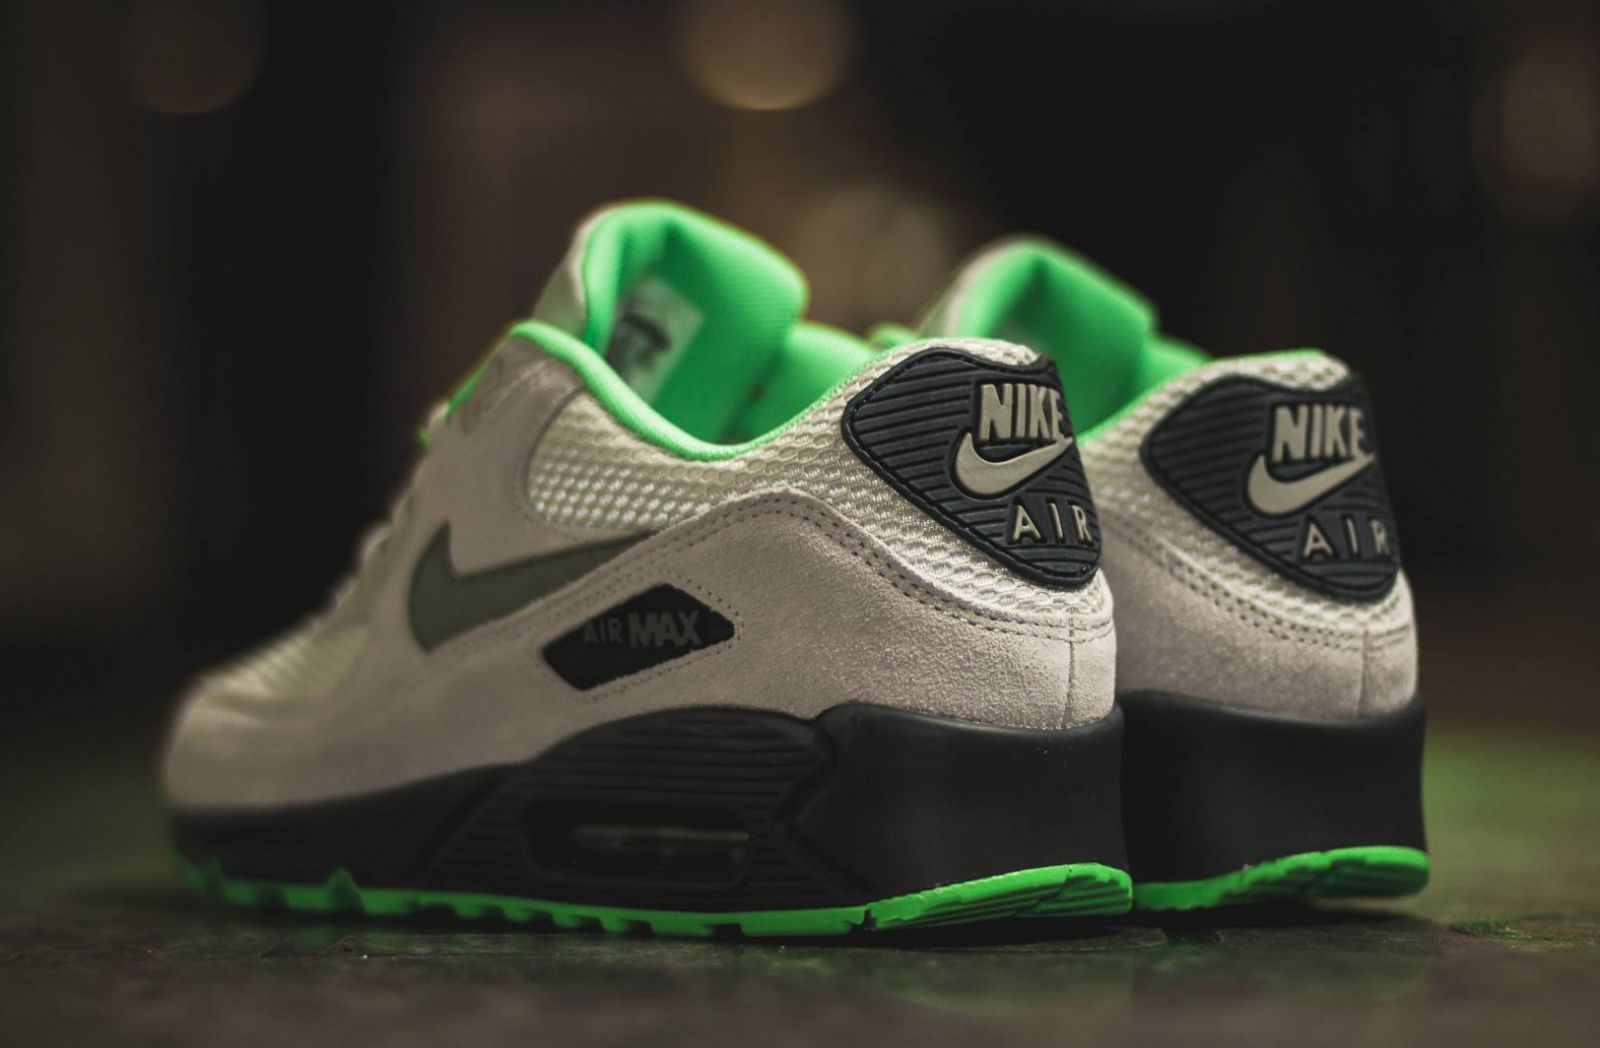 Nike Air Max 90 Green Suede